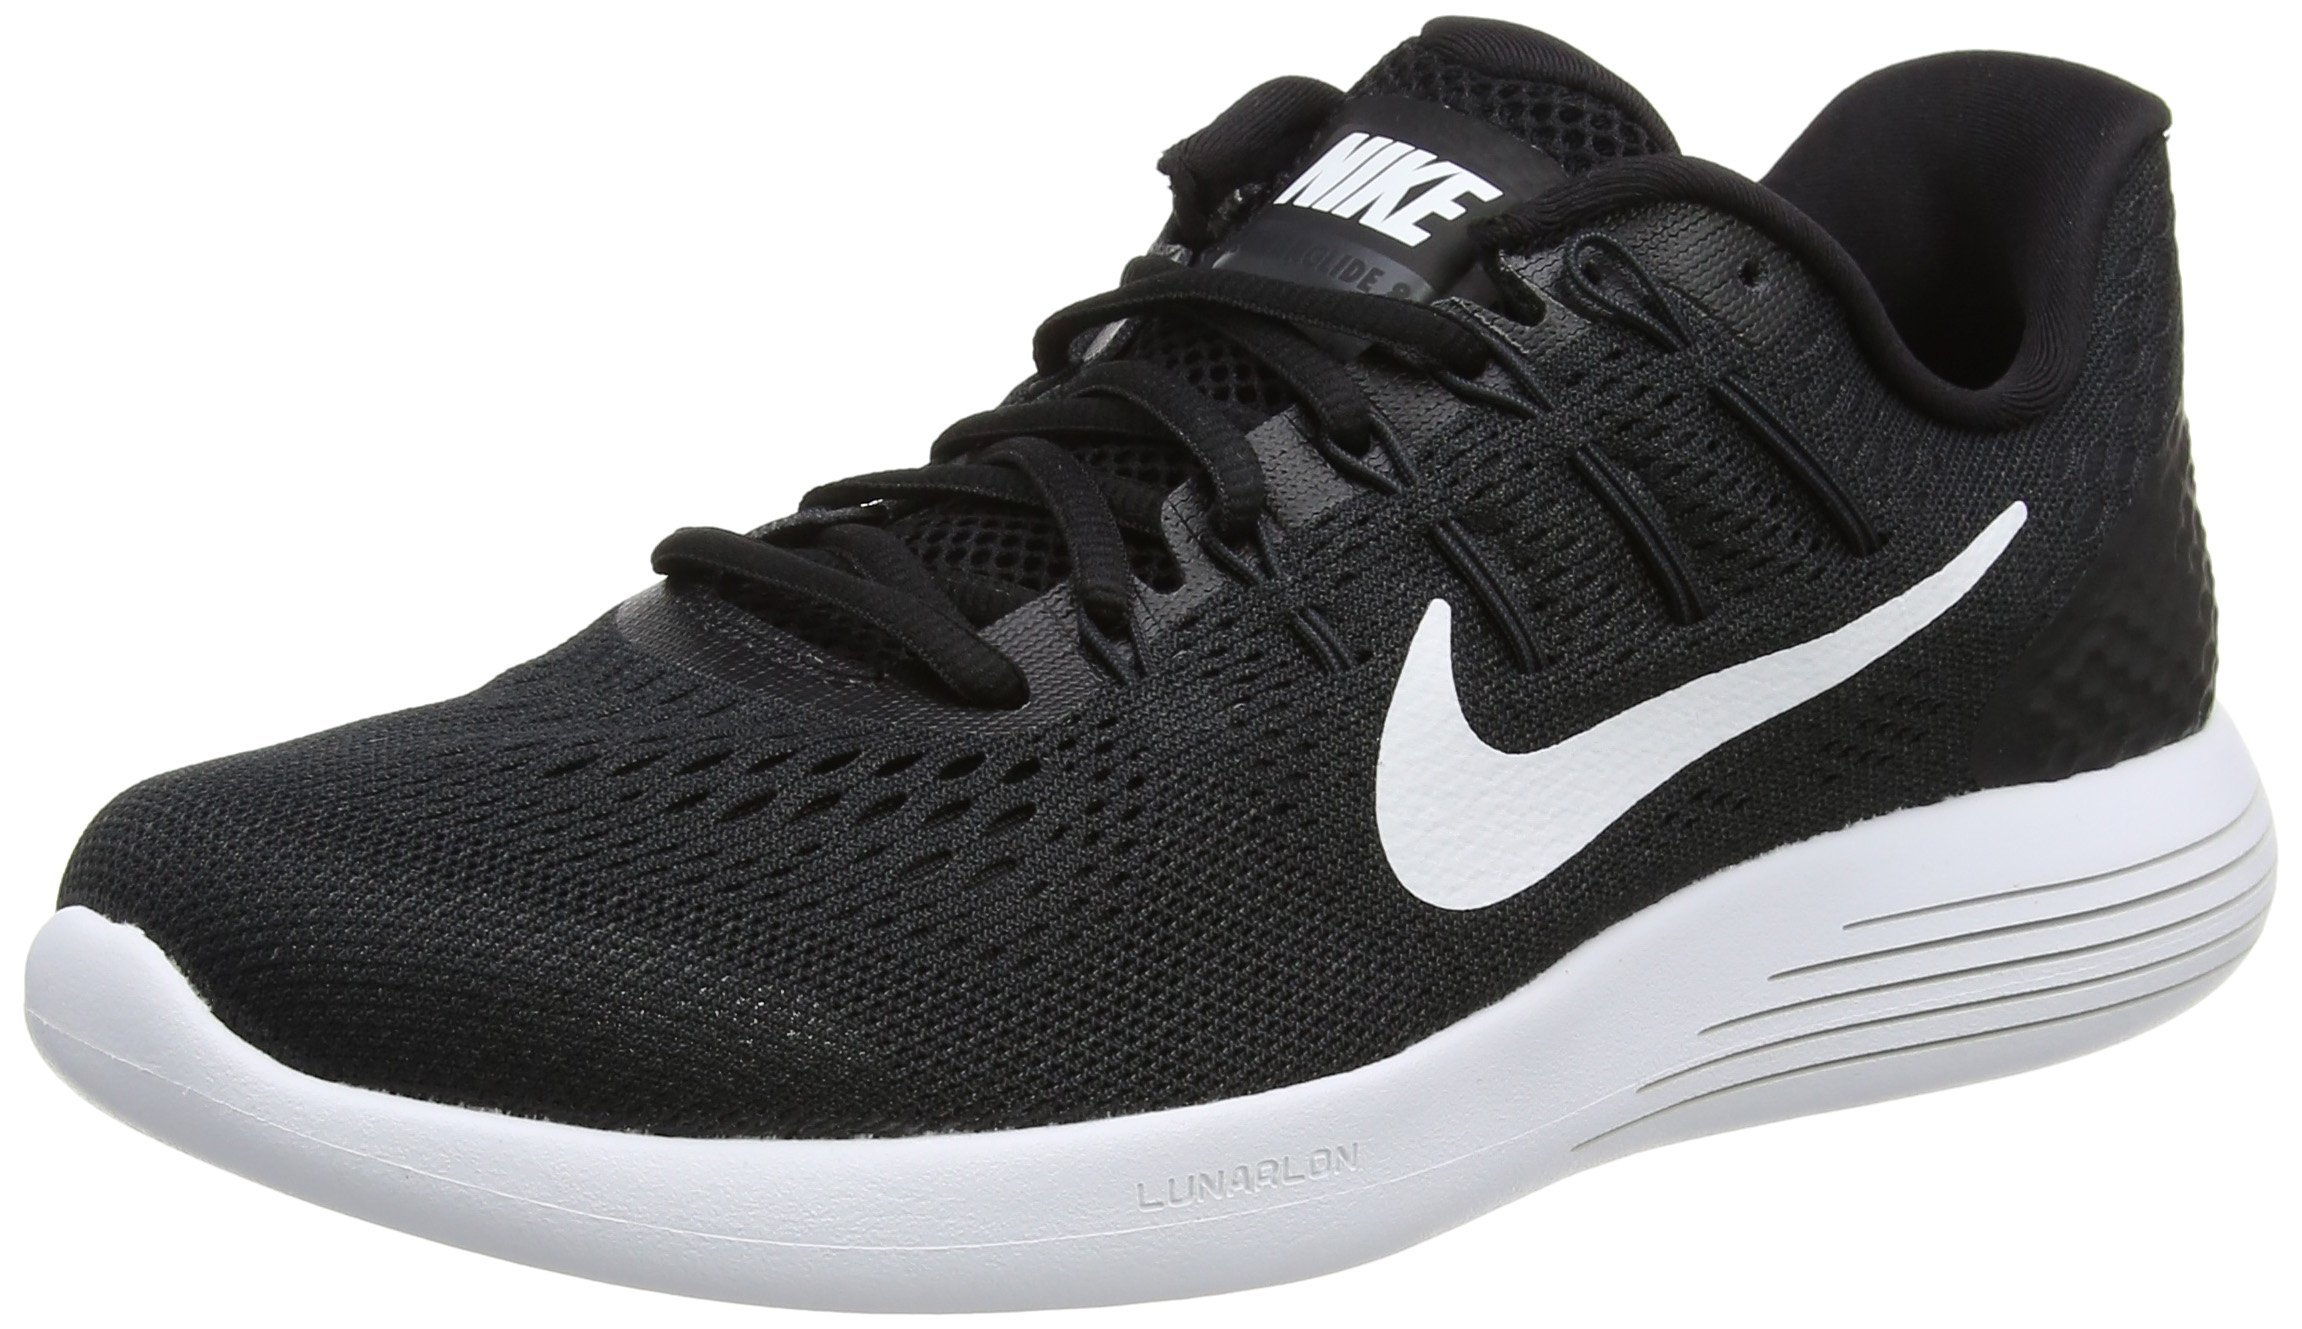 1aa7b4db283a Galleon - Nike Lunarglide 8 Women s Running Shoe